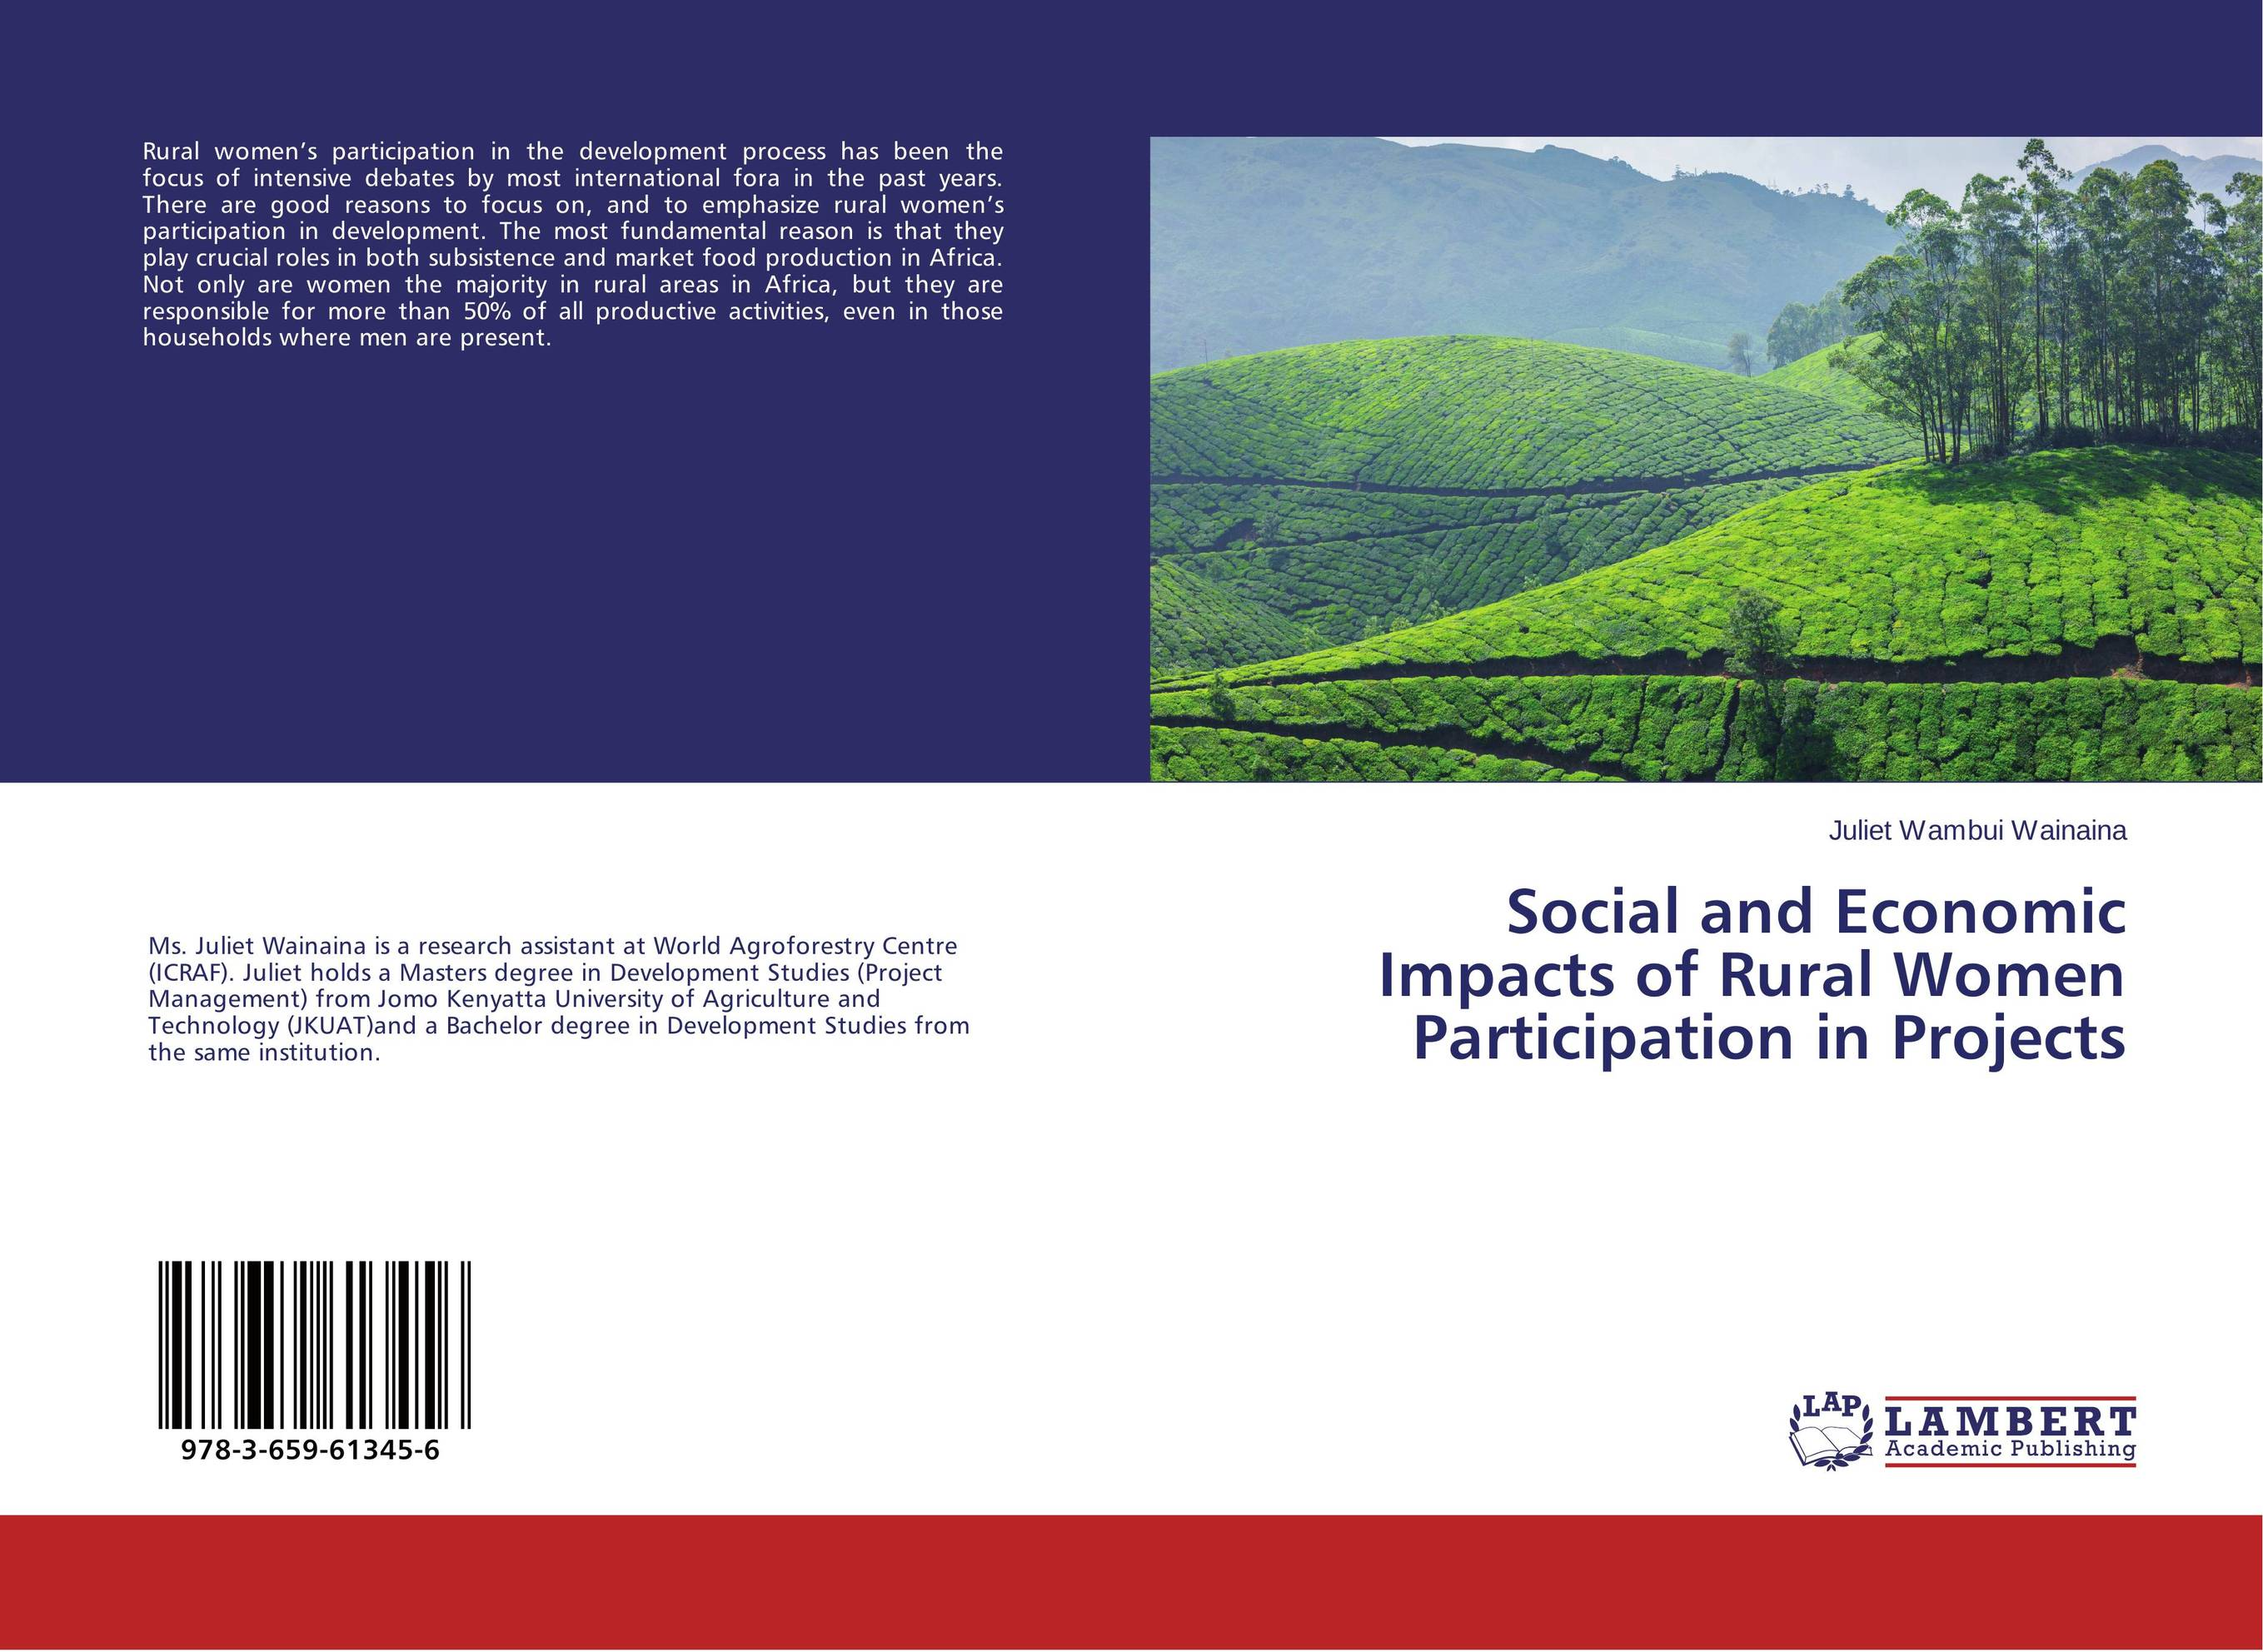 Social and Economic Impacts of Rural Women Participation in Projects children s participation in khat production educational implications